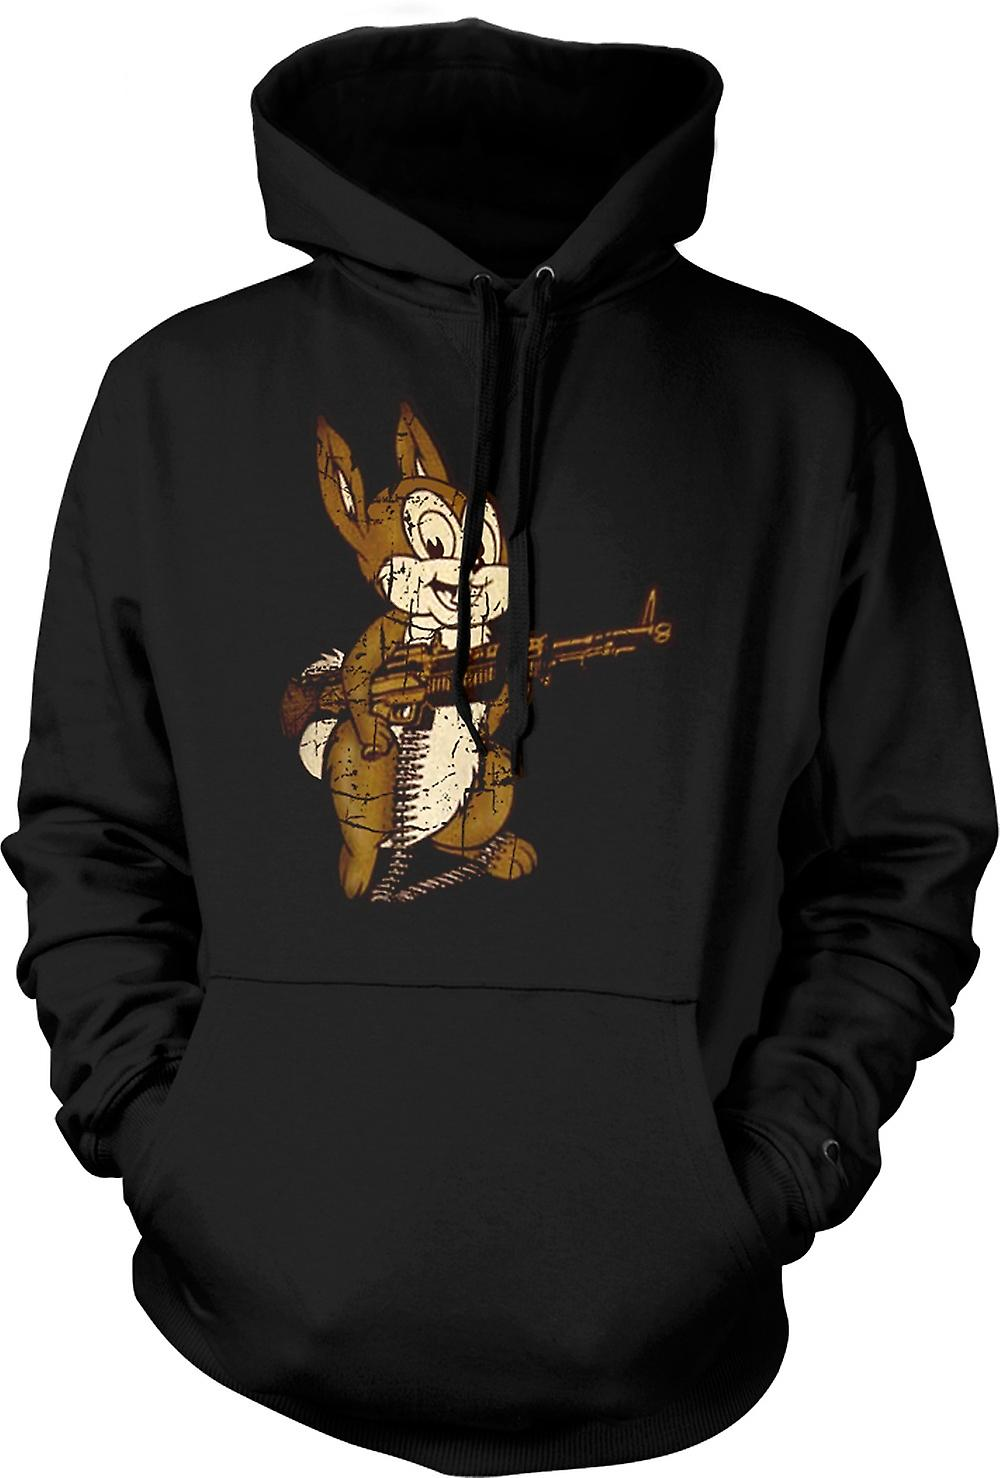 Mens Hoodie - Rabbit With M60 Machine Gun - Cool Design